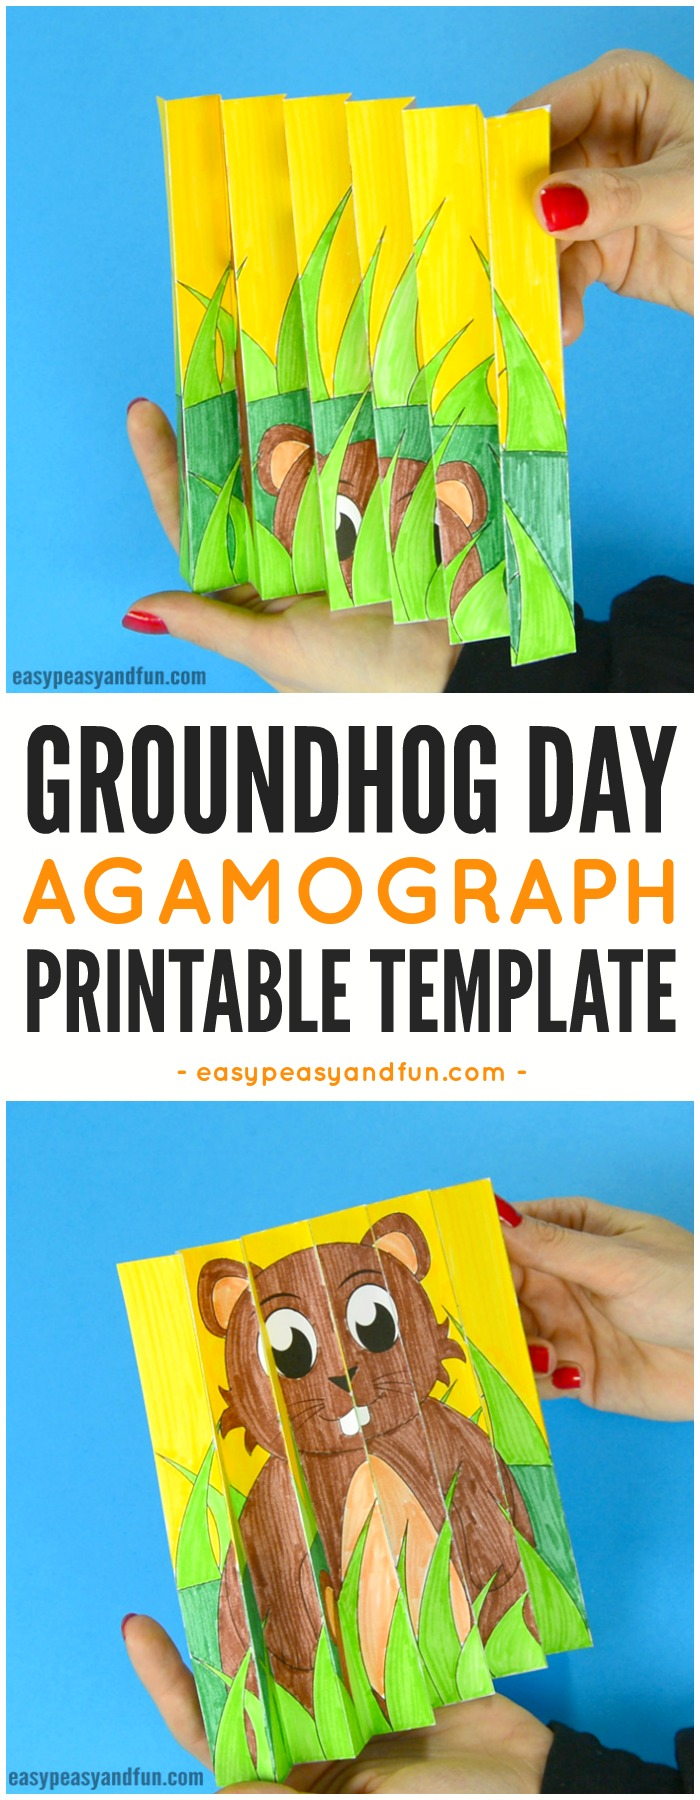 Groundhog Day Agamograph Template Paper Craft for Kids #agamographtemplate #papercraftsforkids #craftsforkids